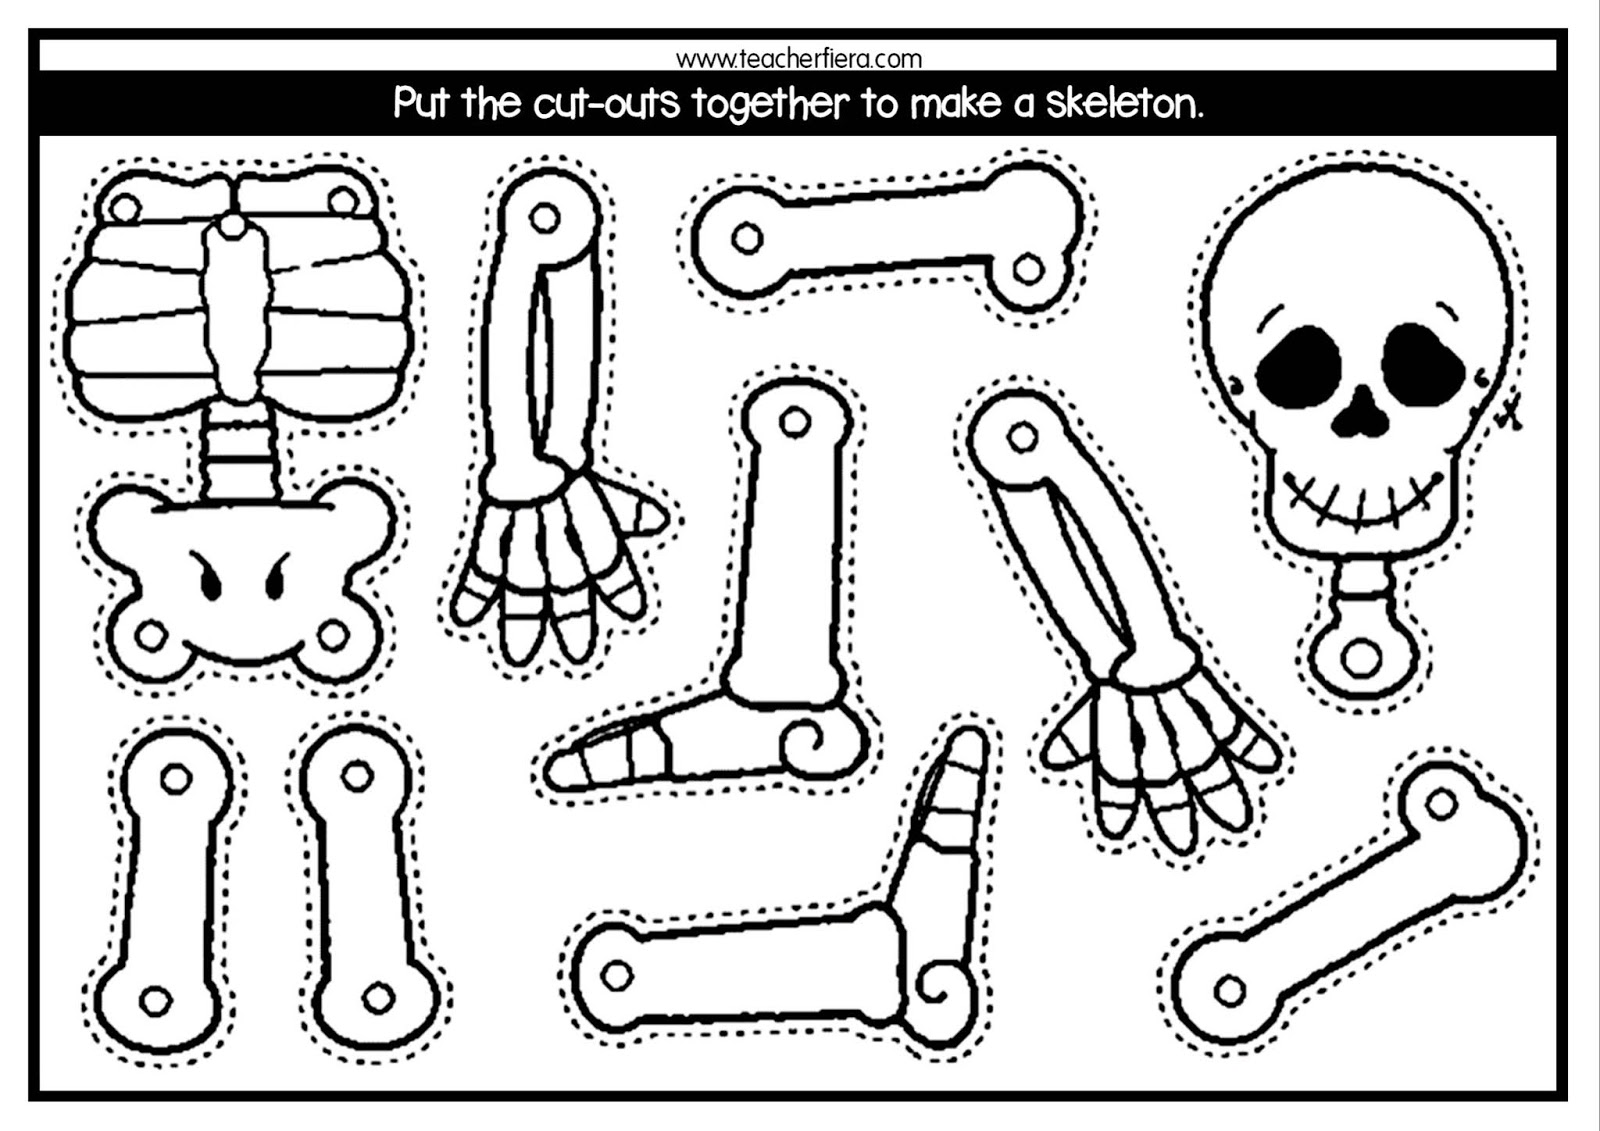 Teacherfiera Year 2 Unit 8 Assembling The Skeleton